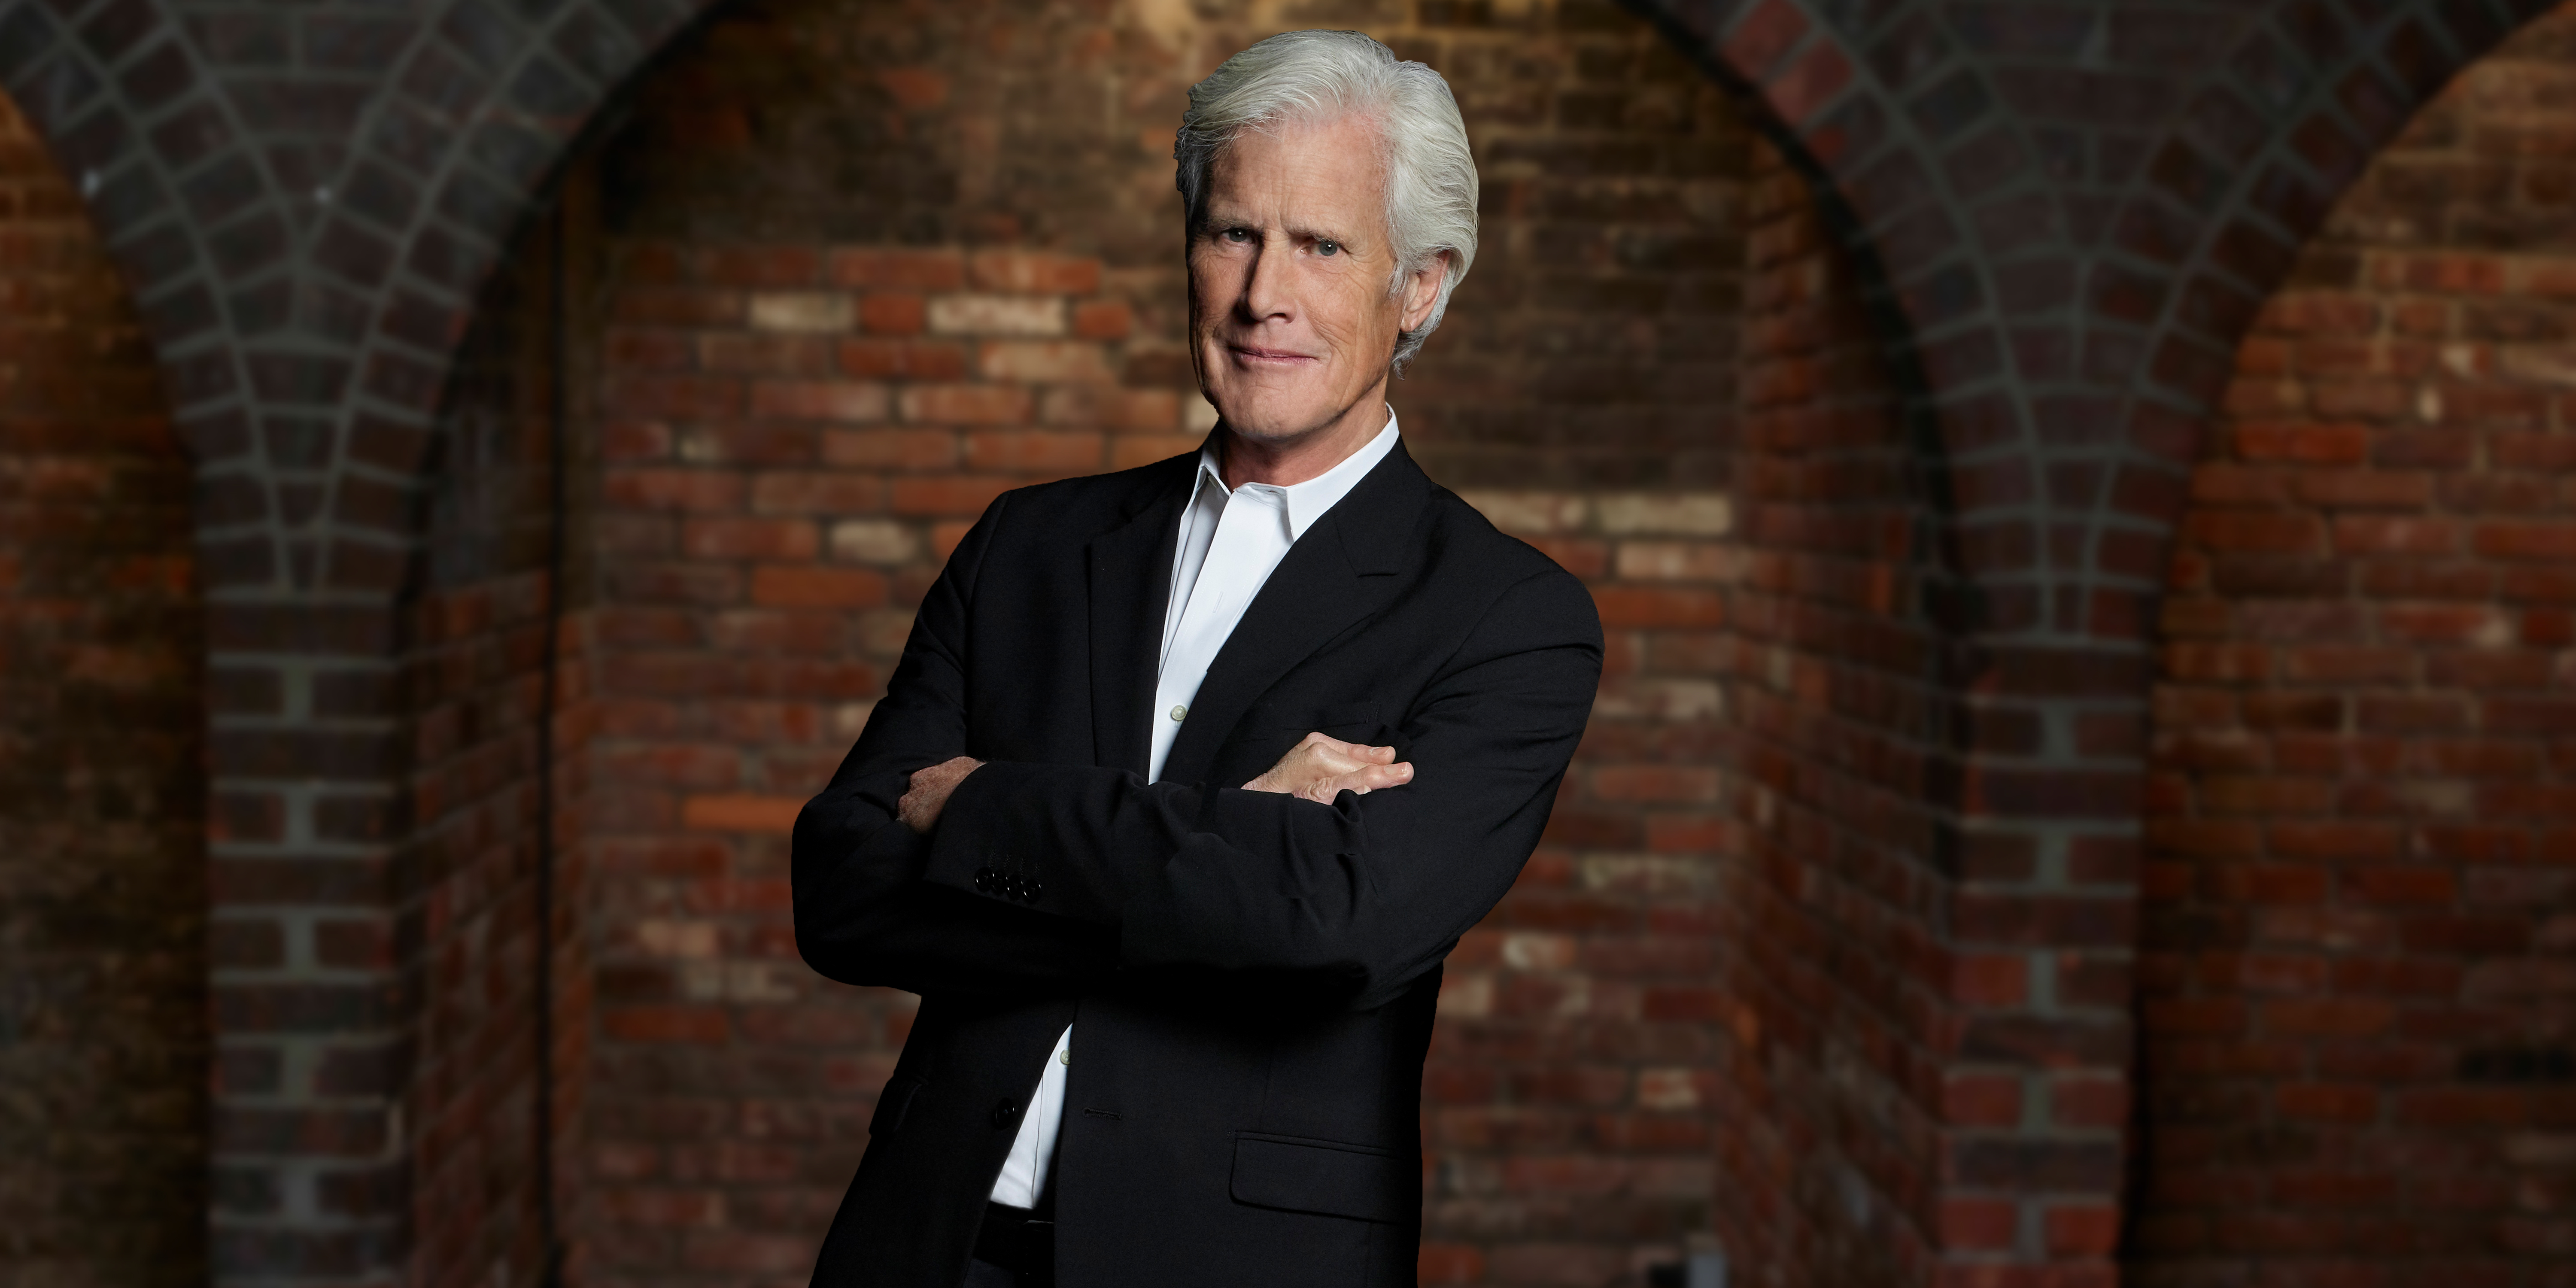 Meet Keith Morrison, Correspondent for the Thing About Pam